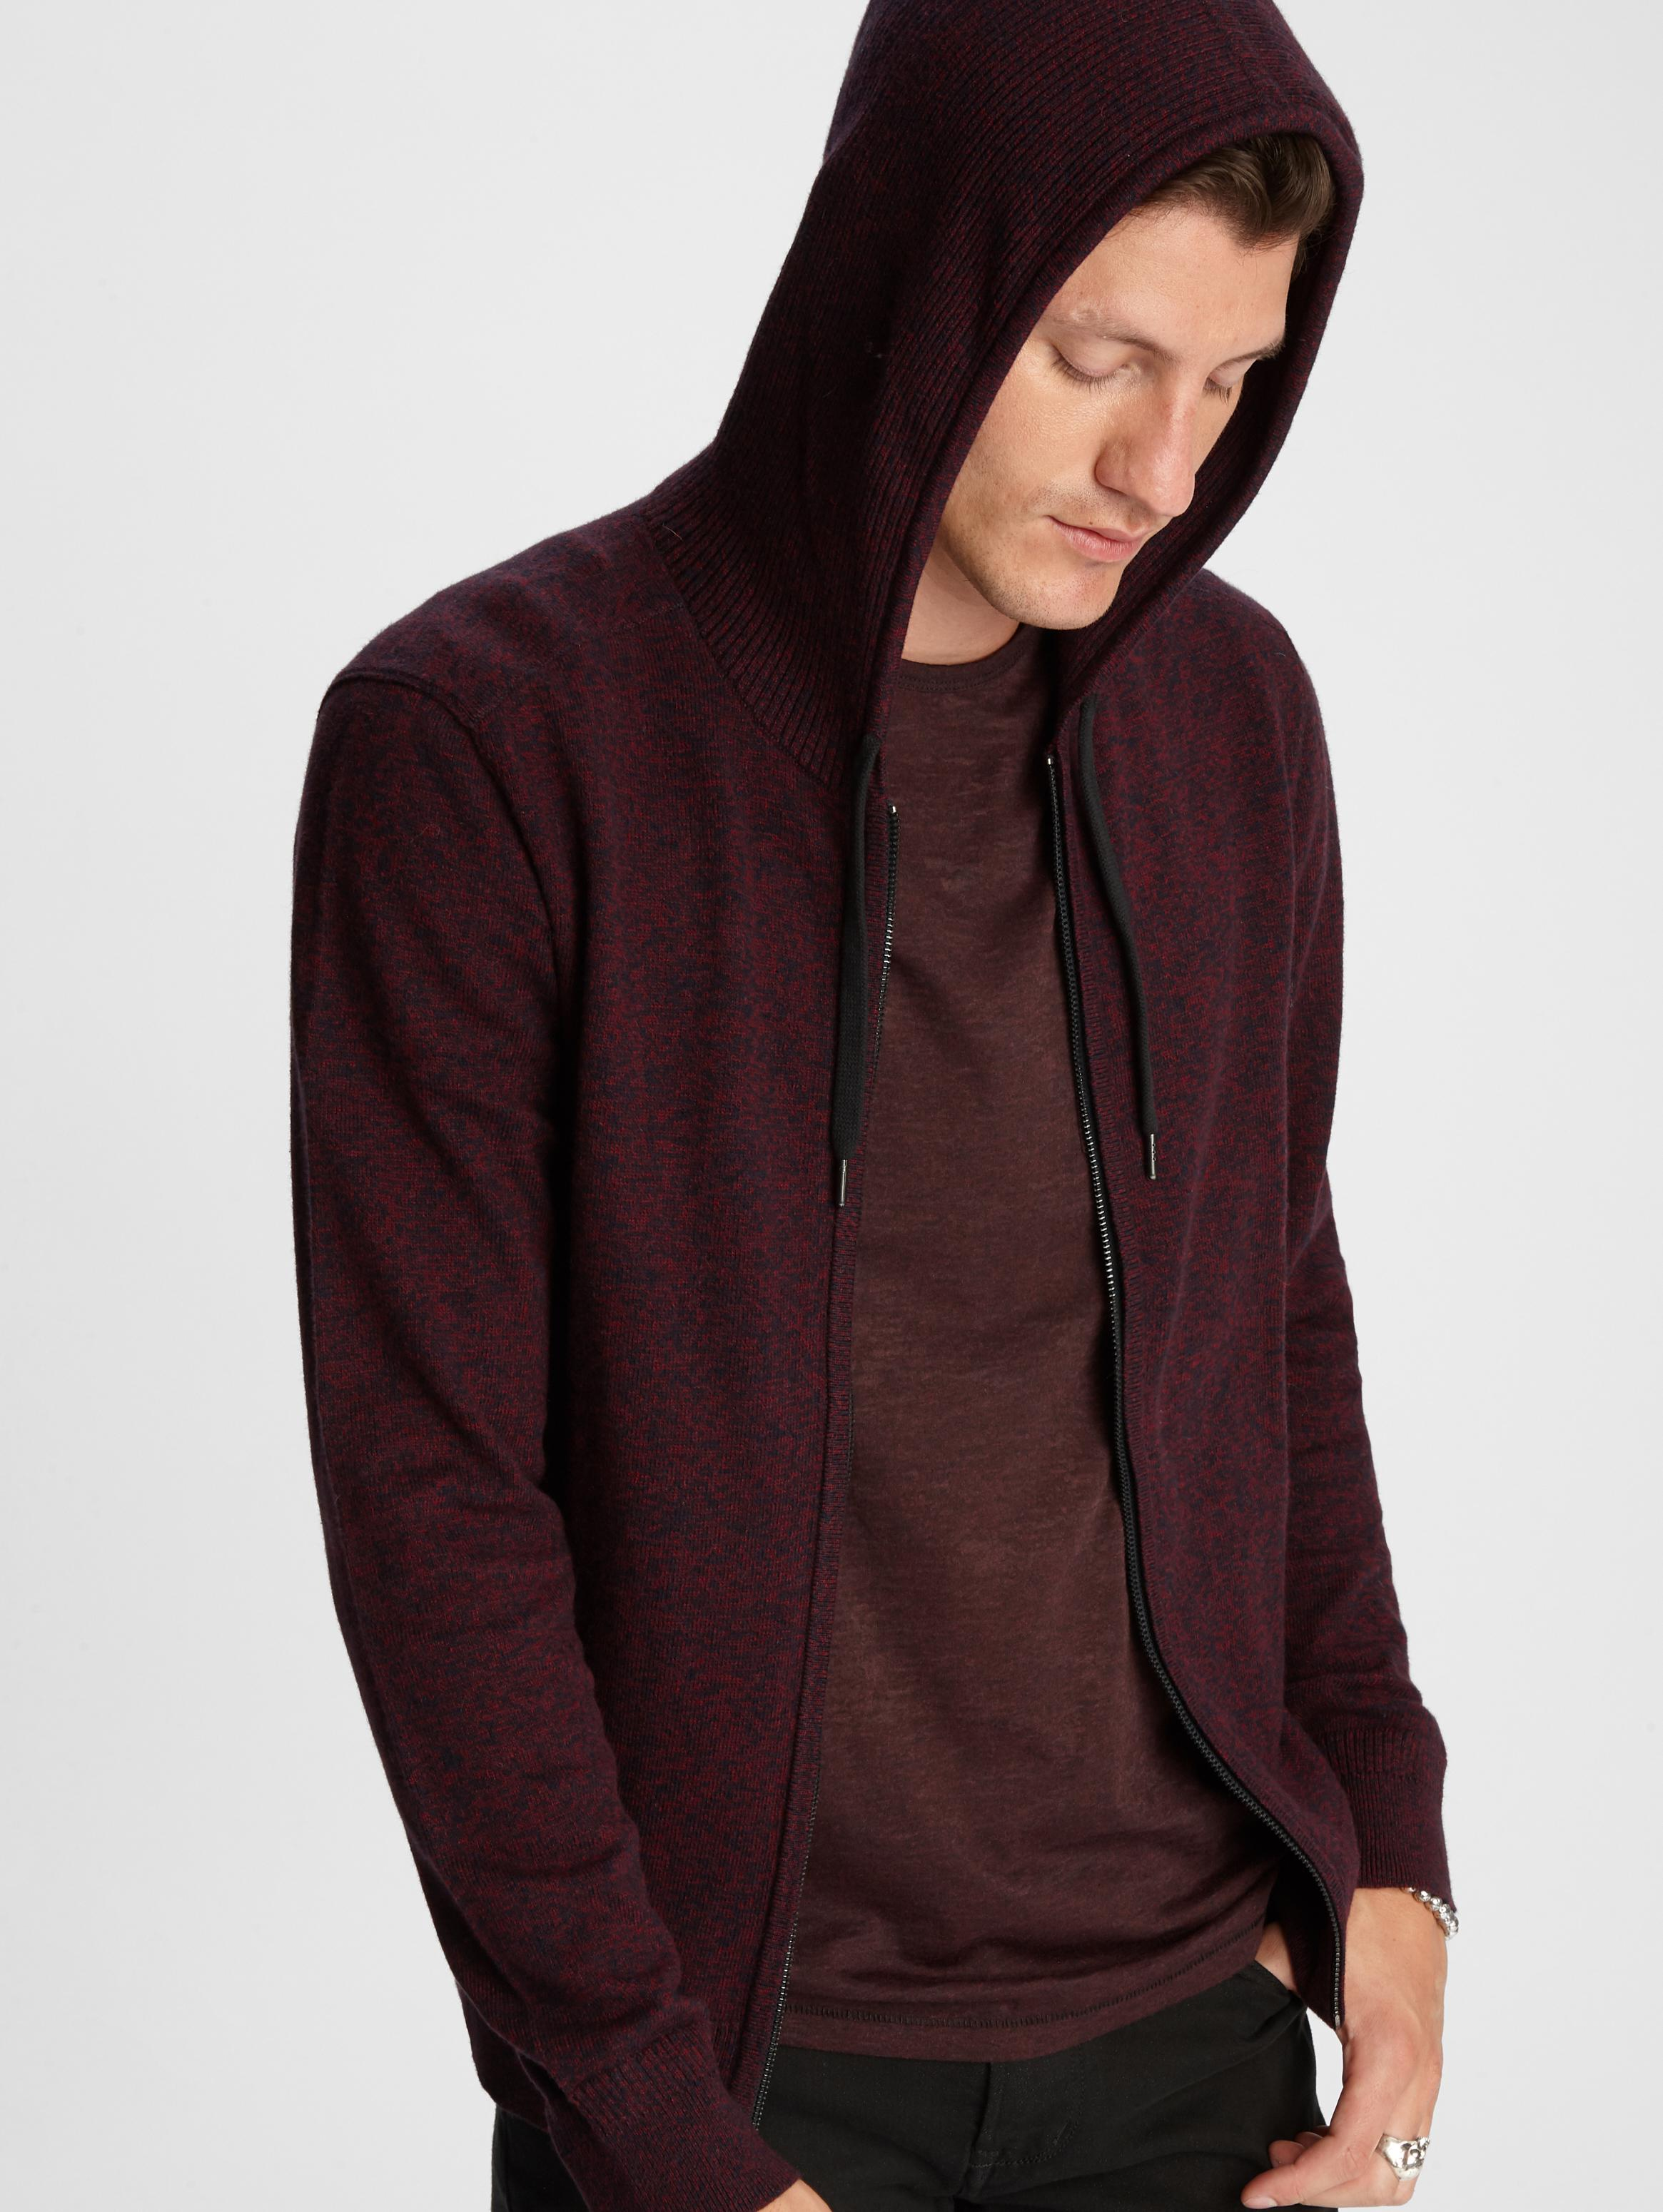 John Varvatos Richmond Zip-Up Hoodie Port